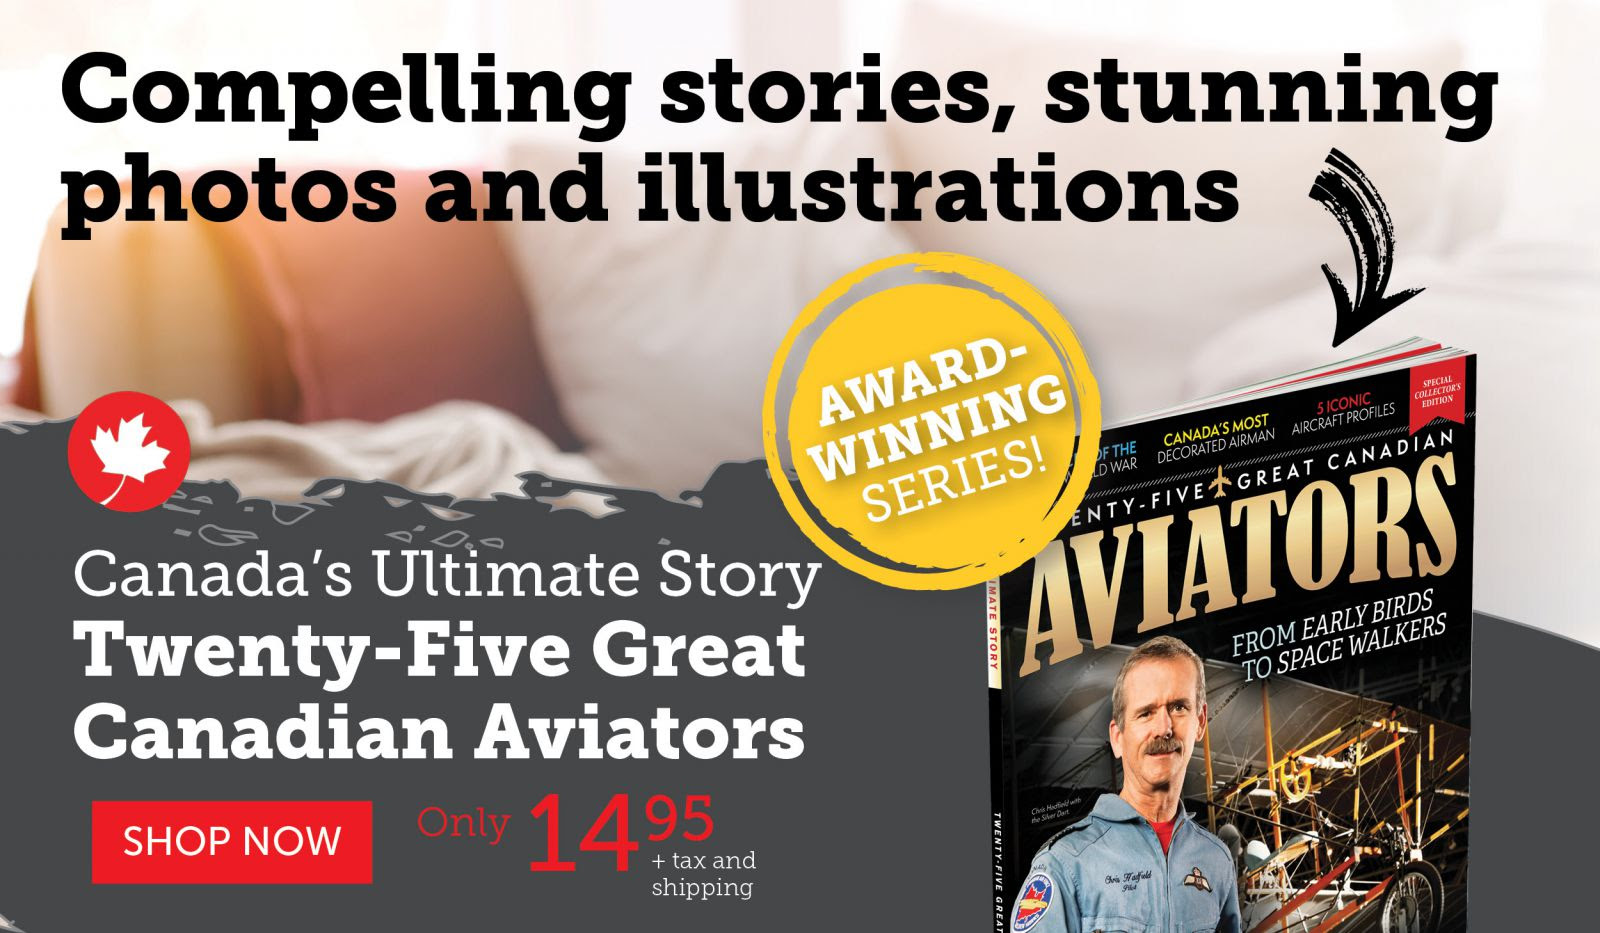 Twenty-Five Great Canadian Aviators!